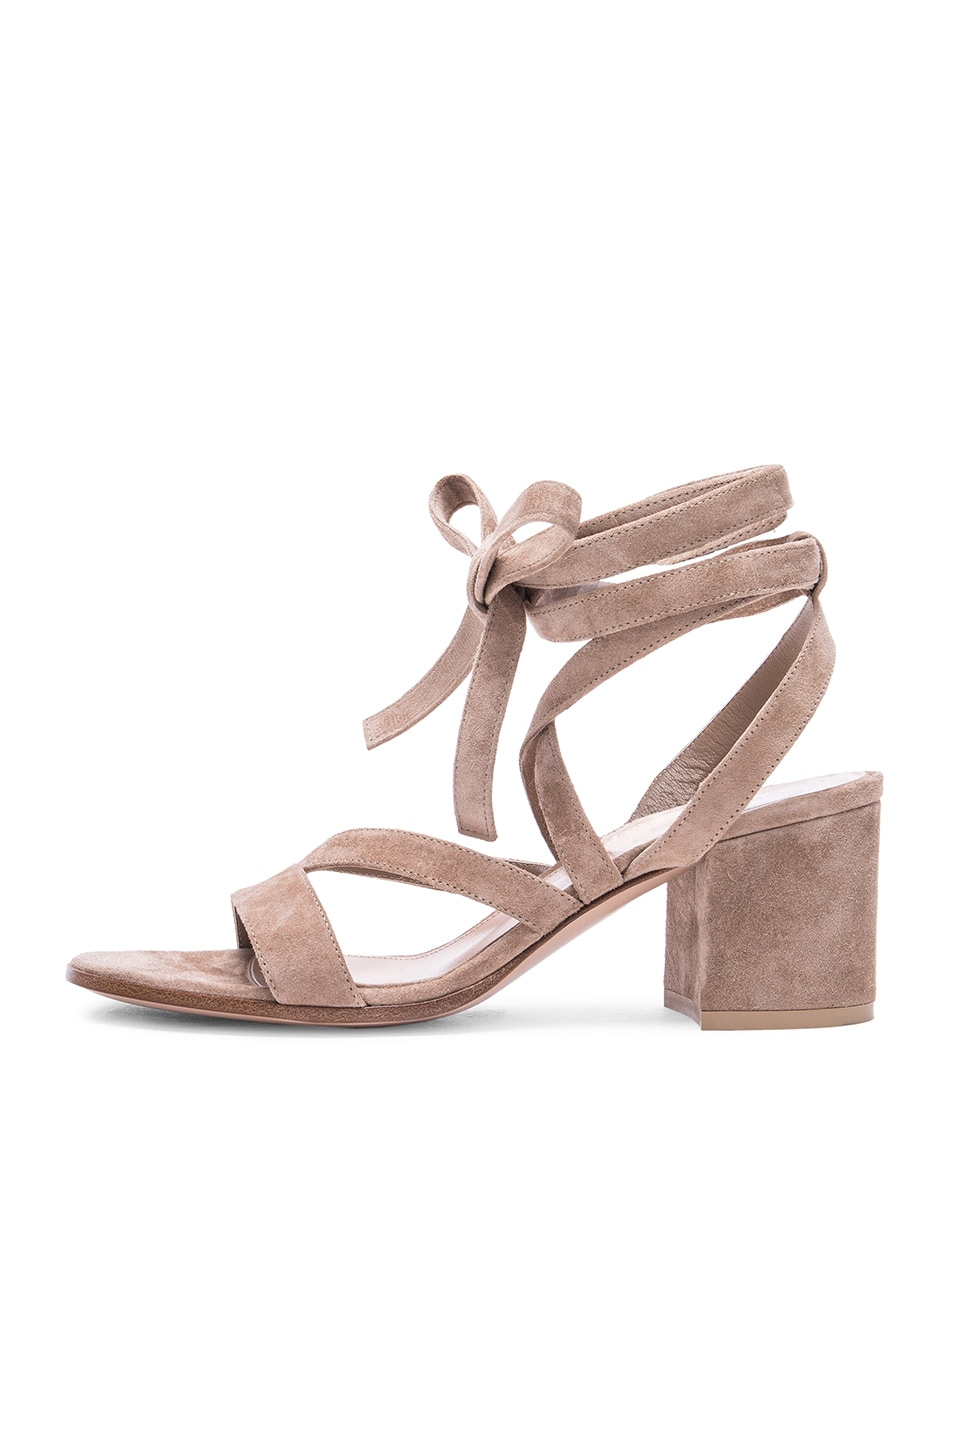 Image 5 of Gianvito Rossi Suede Janis Low Sandals in Bisque